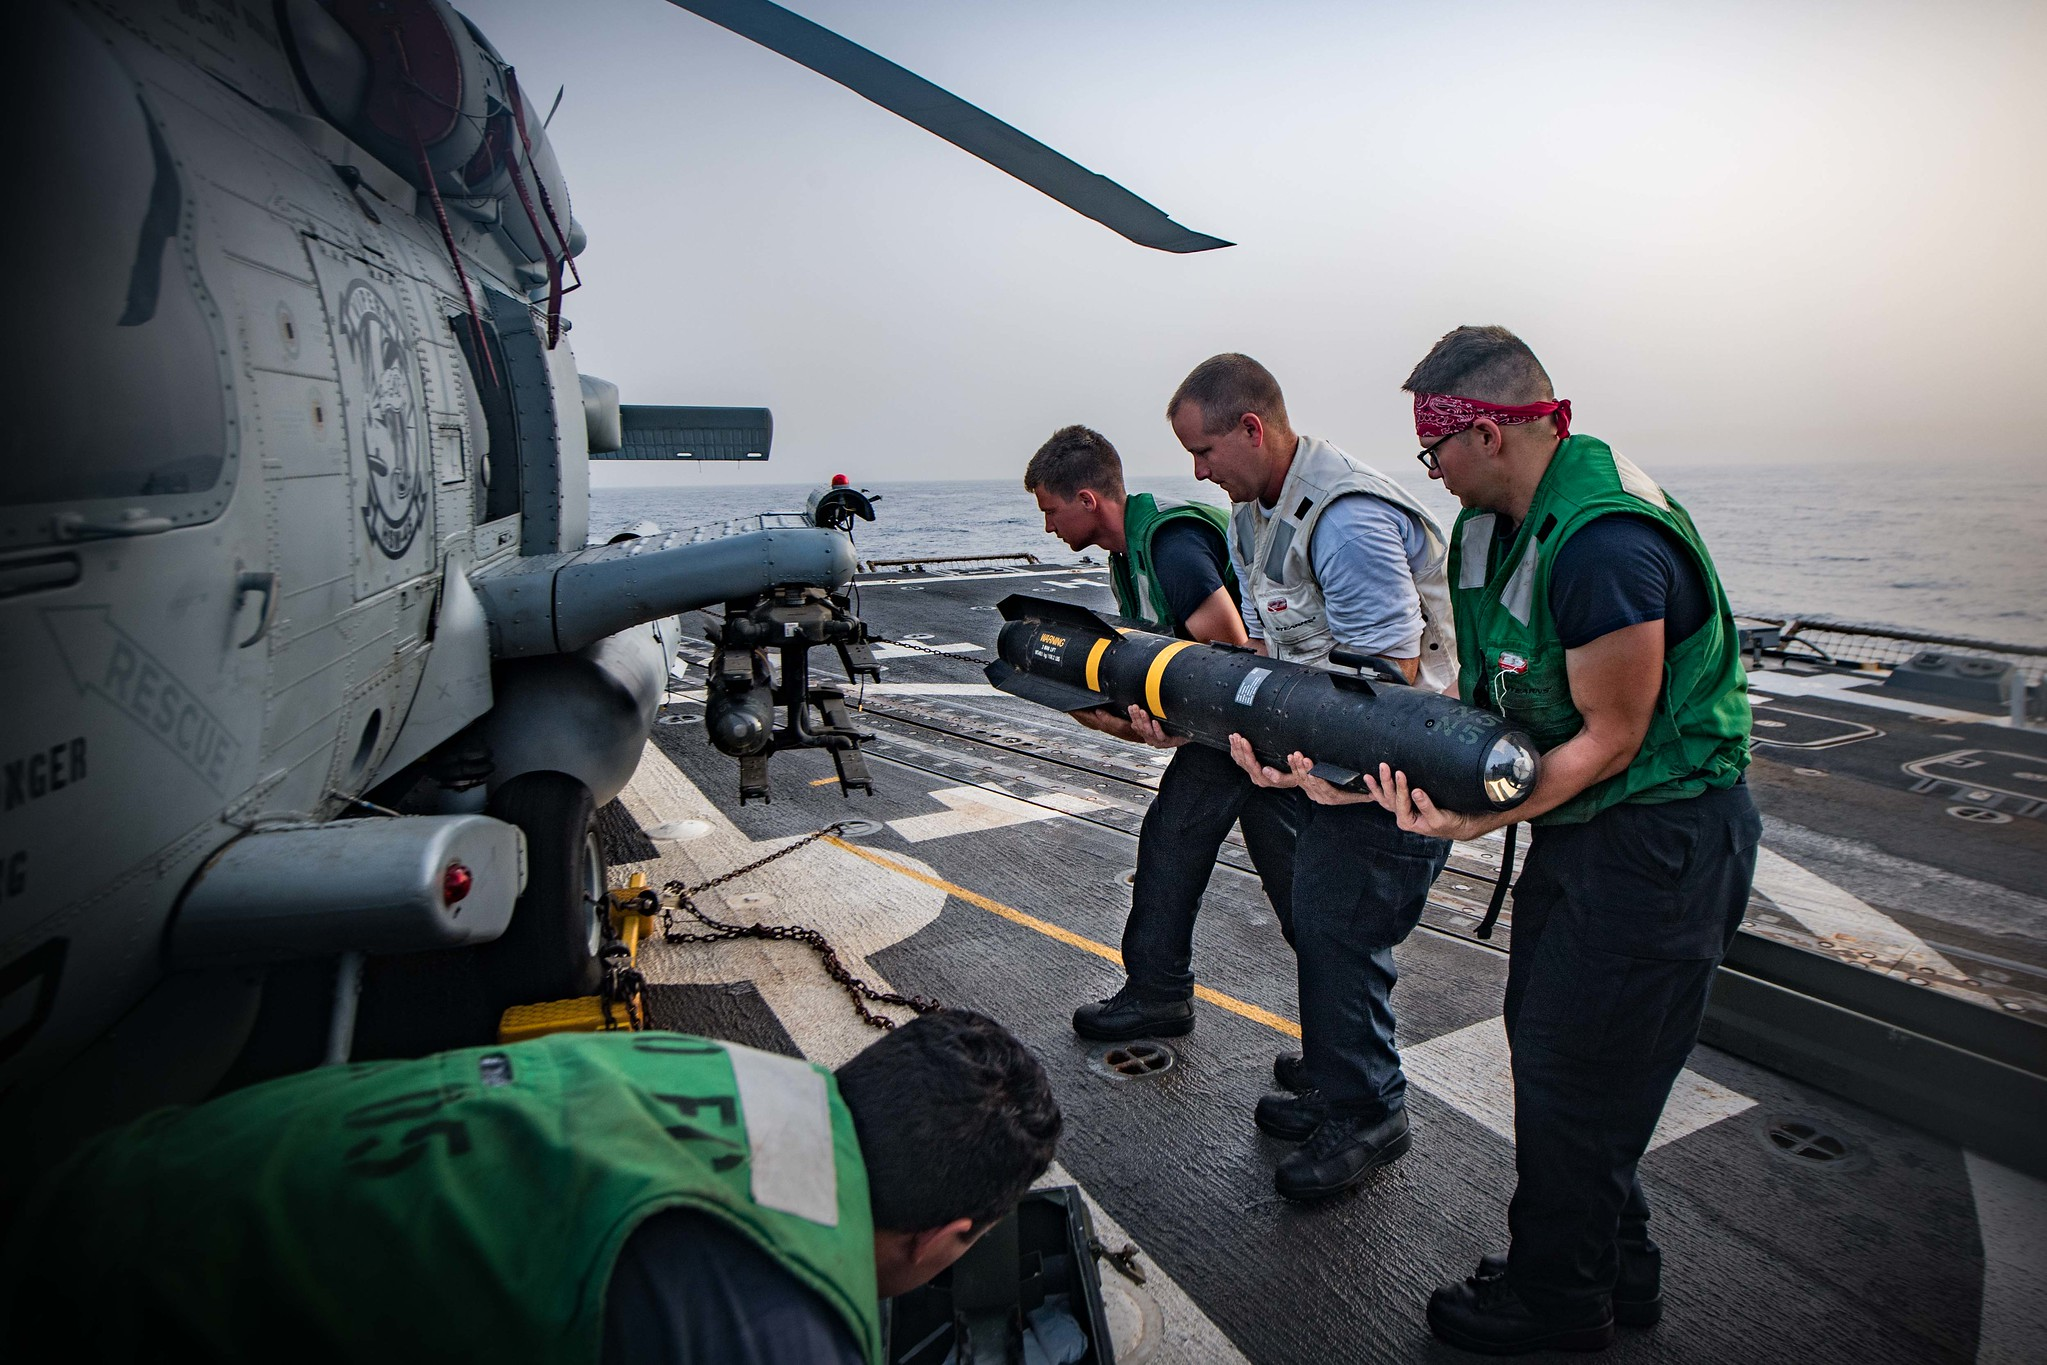 U.S. Navy Sailors load an AGM-114 Hellfire missile onto an MH-60R Sea Hawk helicopter.